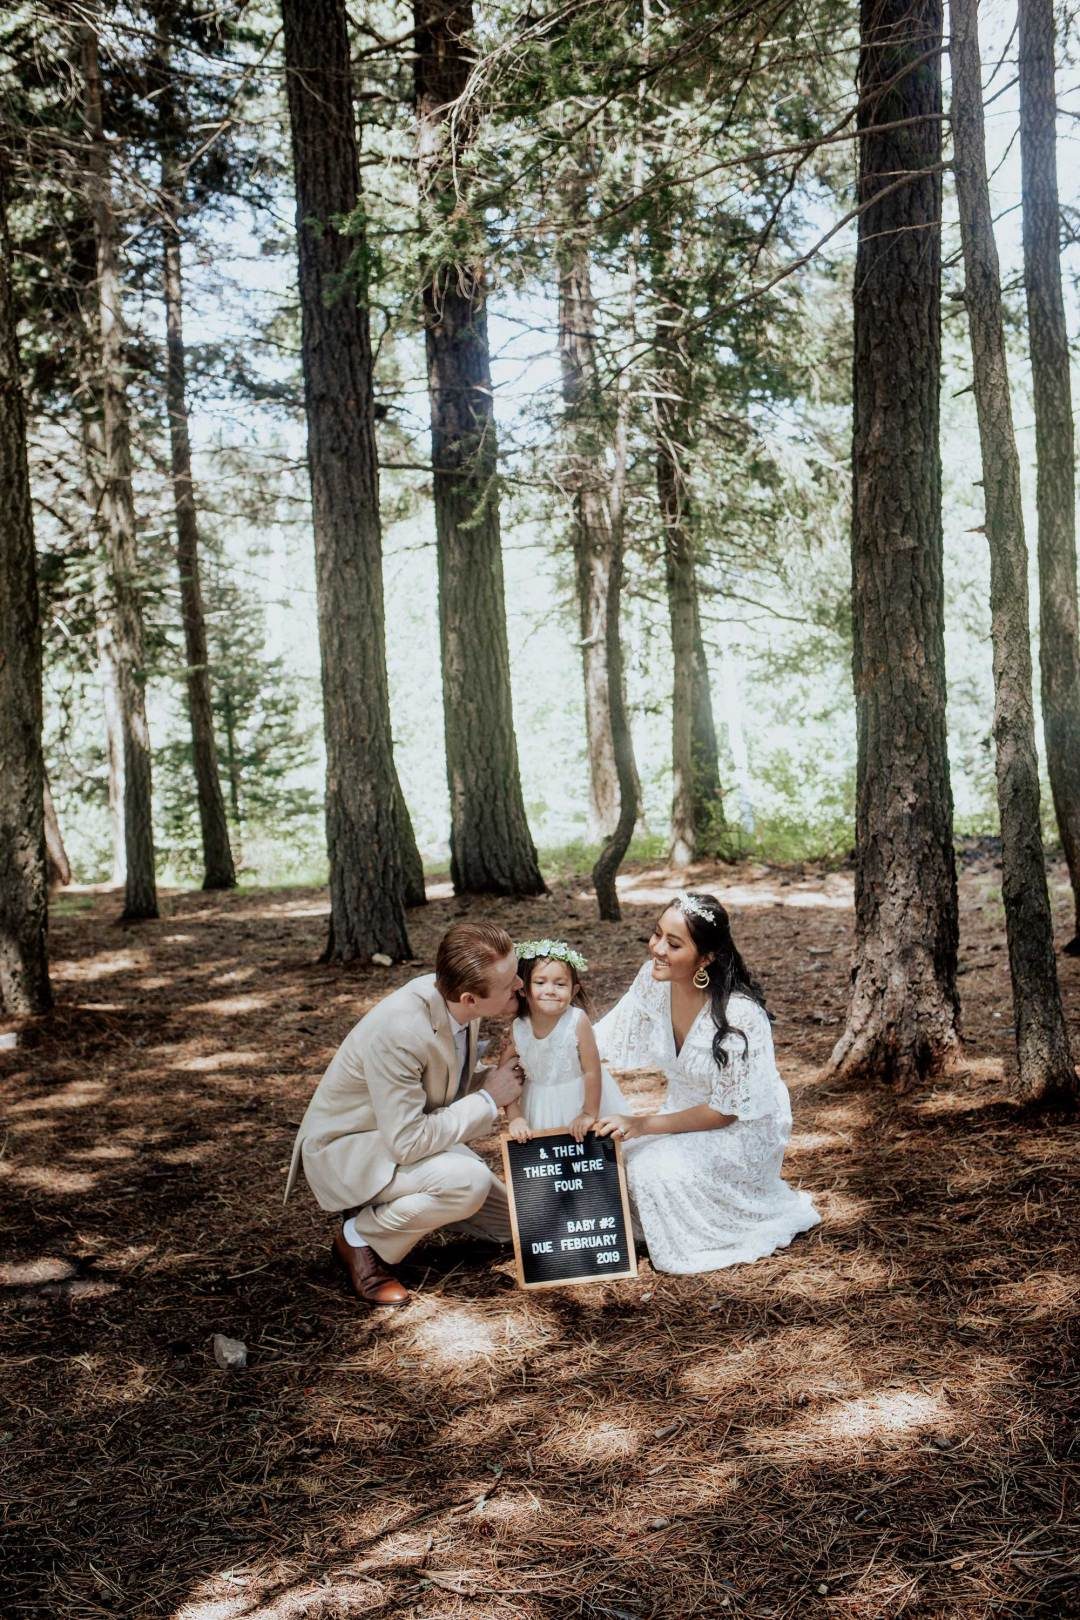 Pregnancy Announcement Baby Number 2_TheVibesCloset_Molly Larsen_Style Blogger_mom Blogger_Beauty Blogger_family picture_10